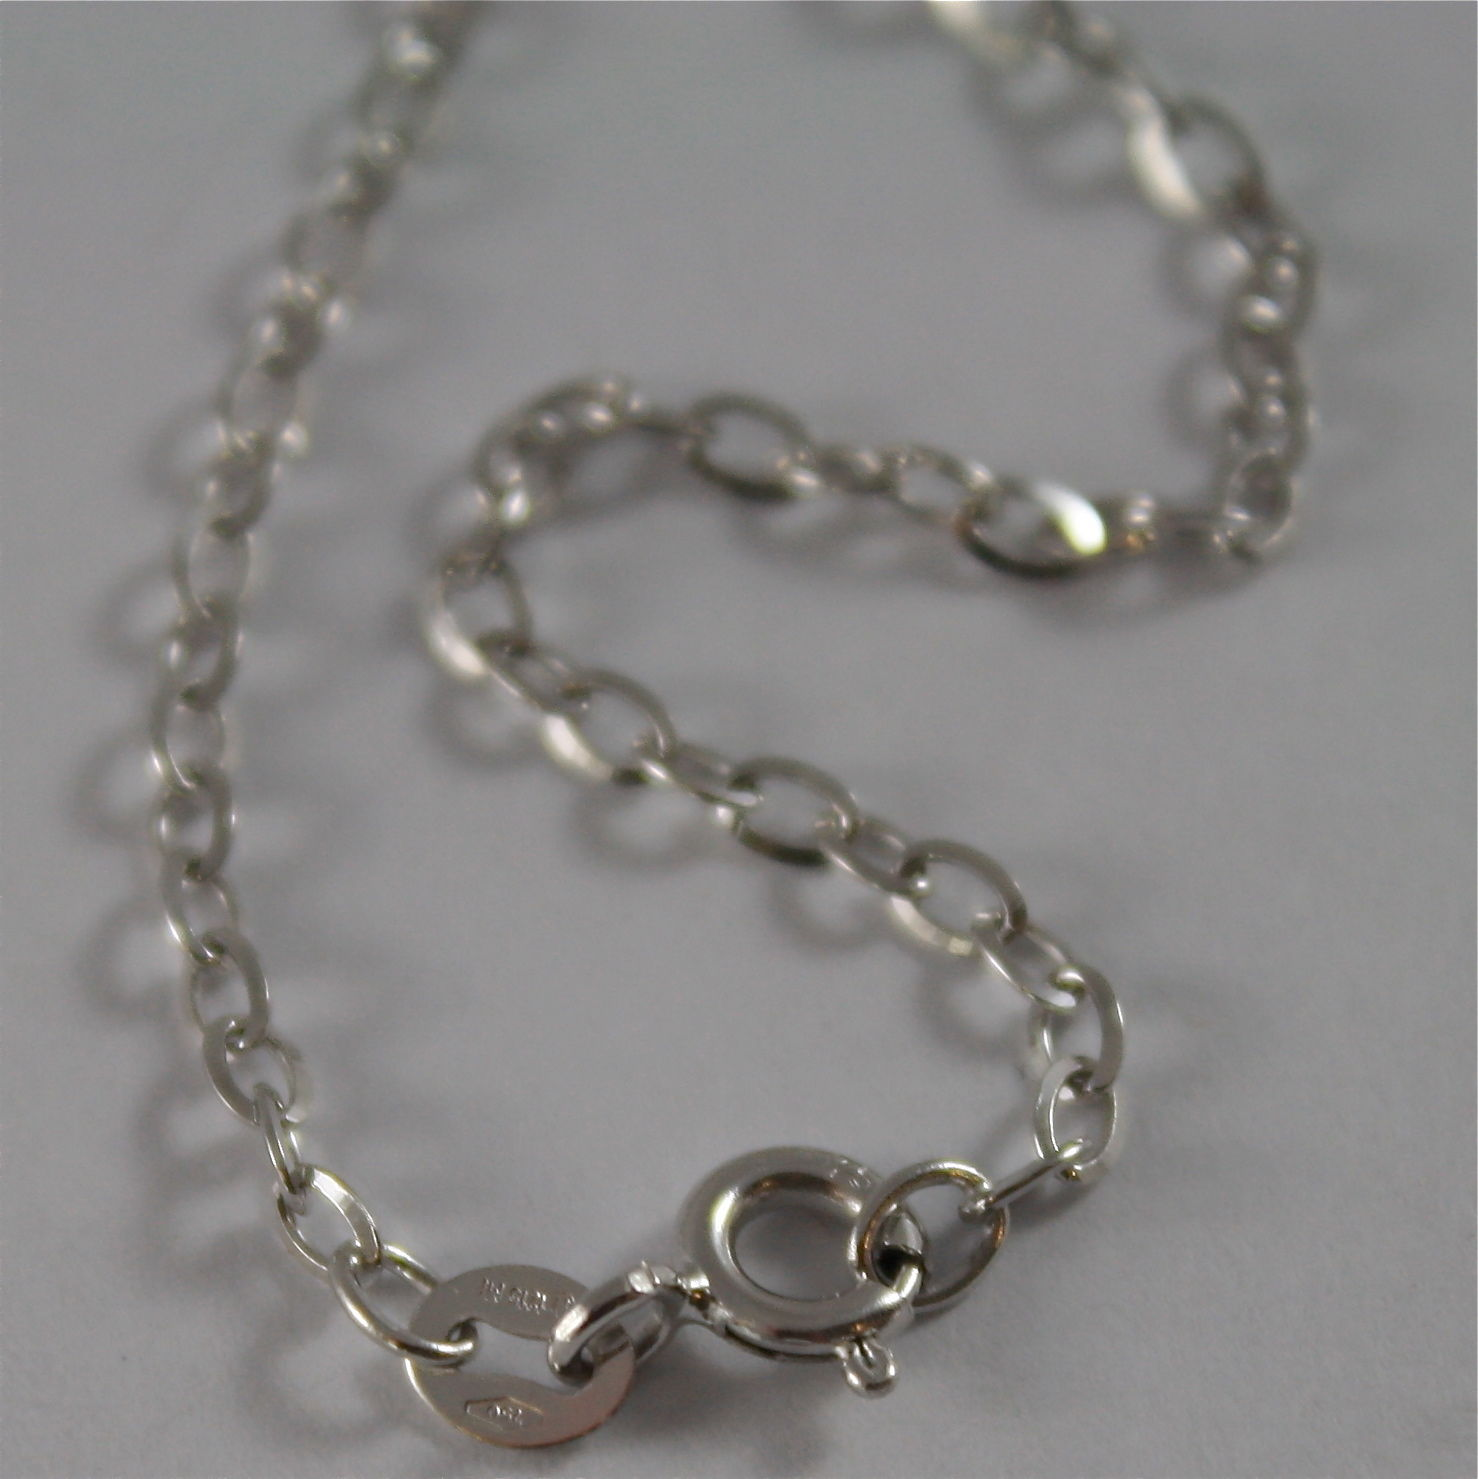 18K WHITE GOLD CHAIN MINI 2 MM ROLO OVAL MIRROR LINK 17.70 INCHES MADE IN ITALY